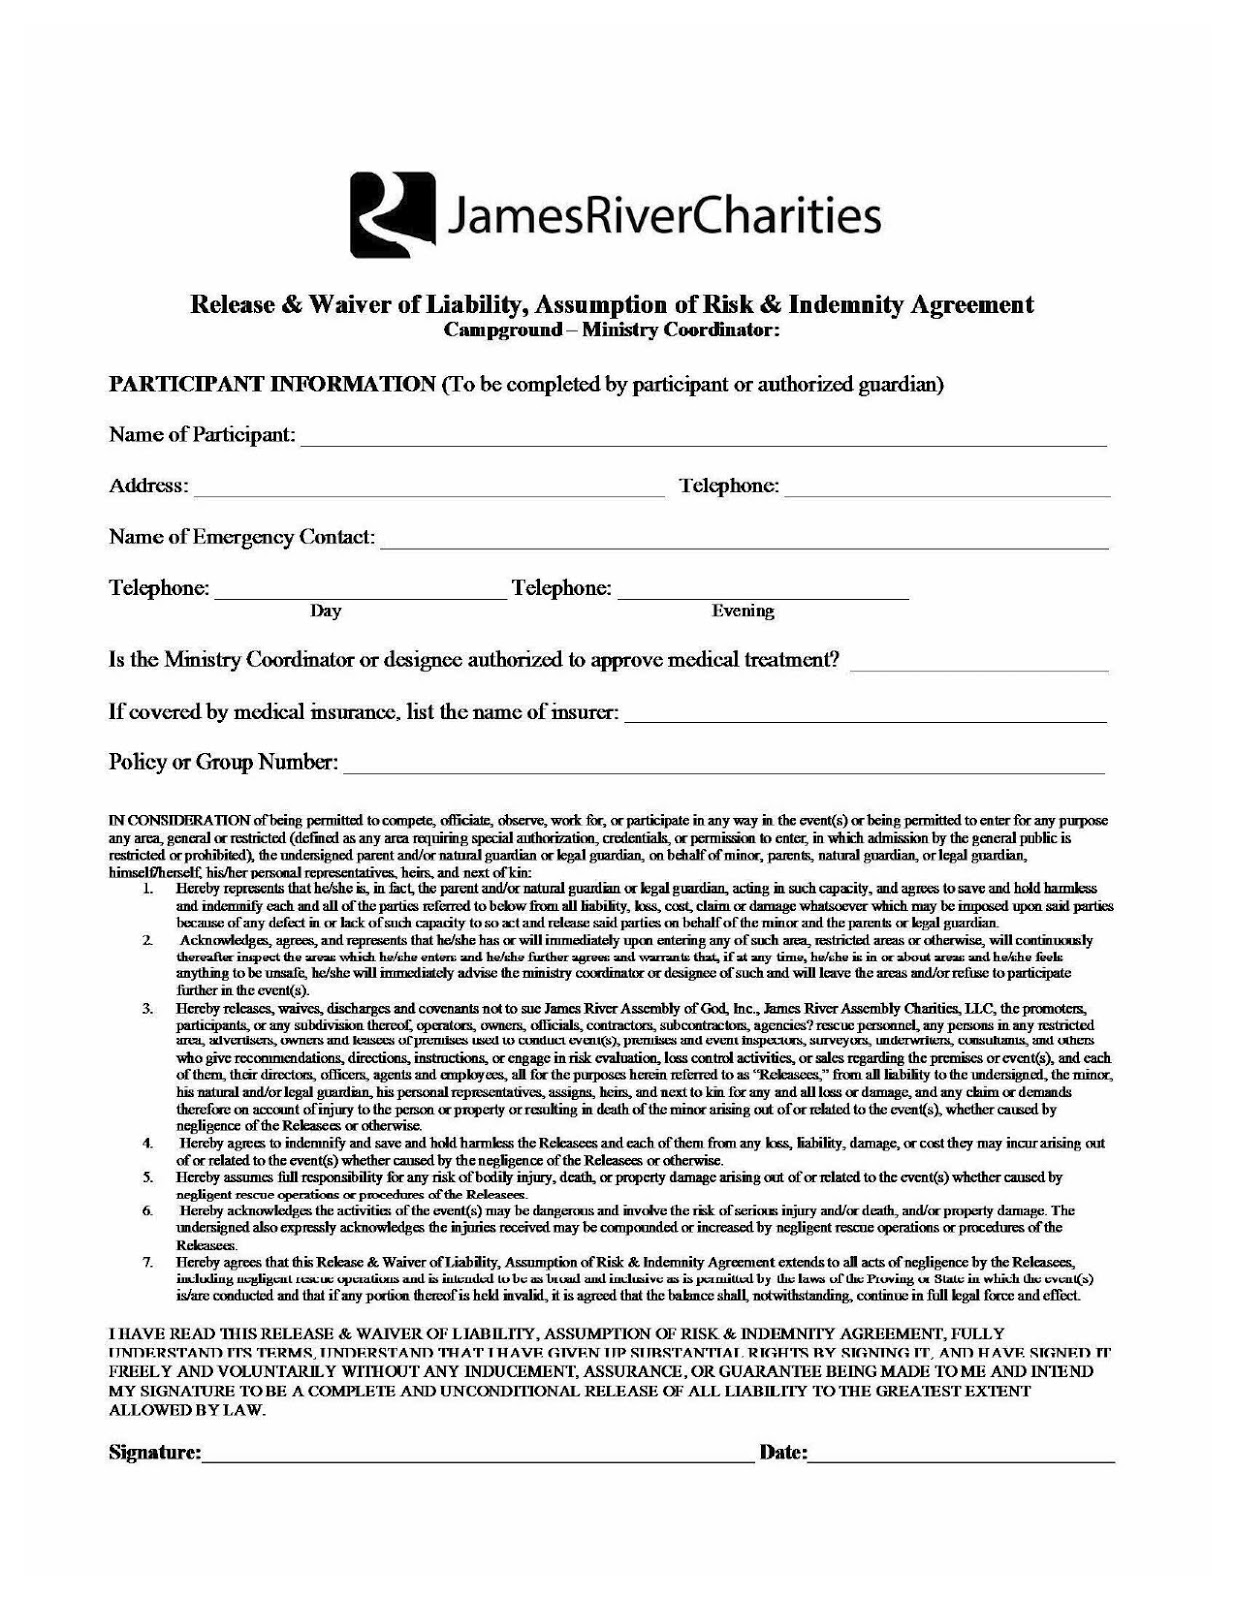 photography consent release form template .